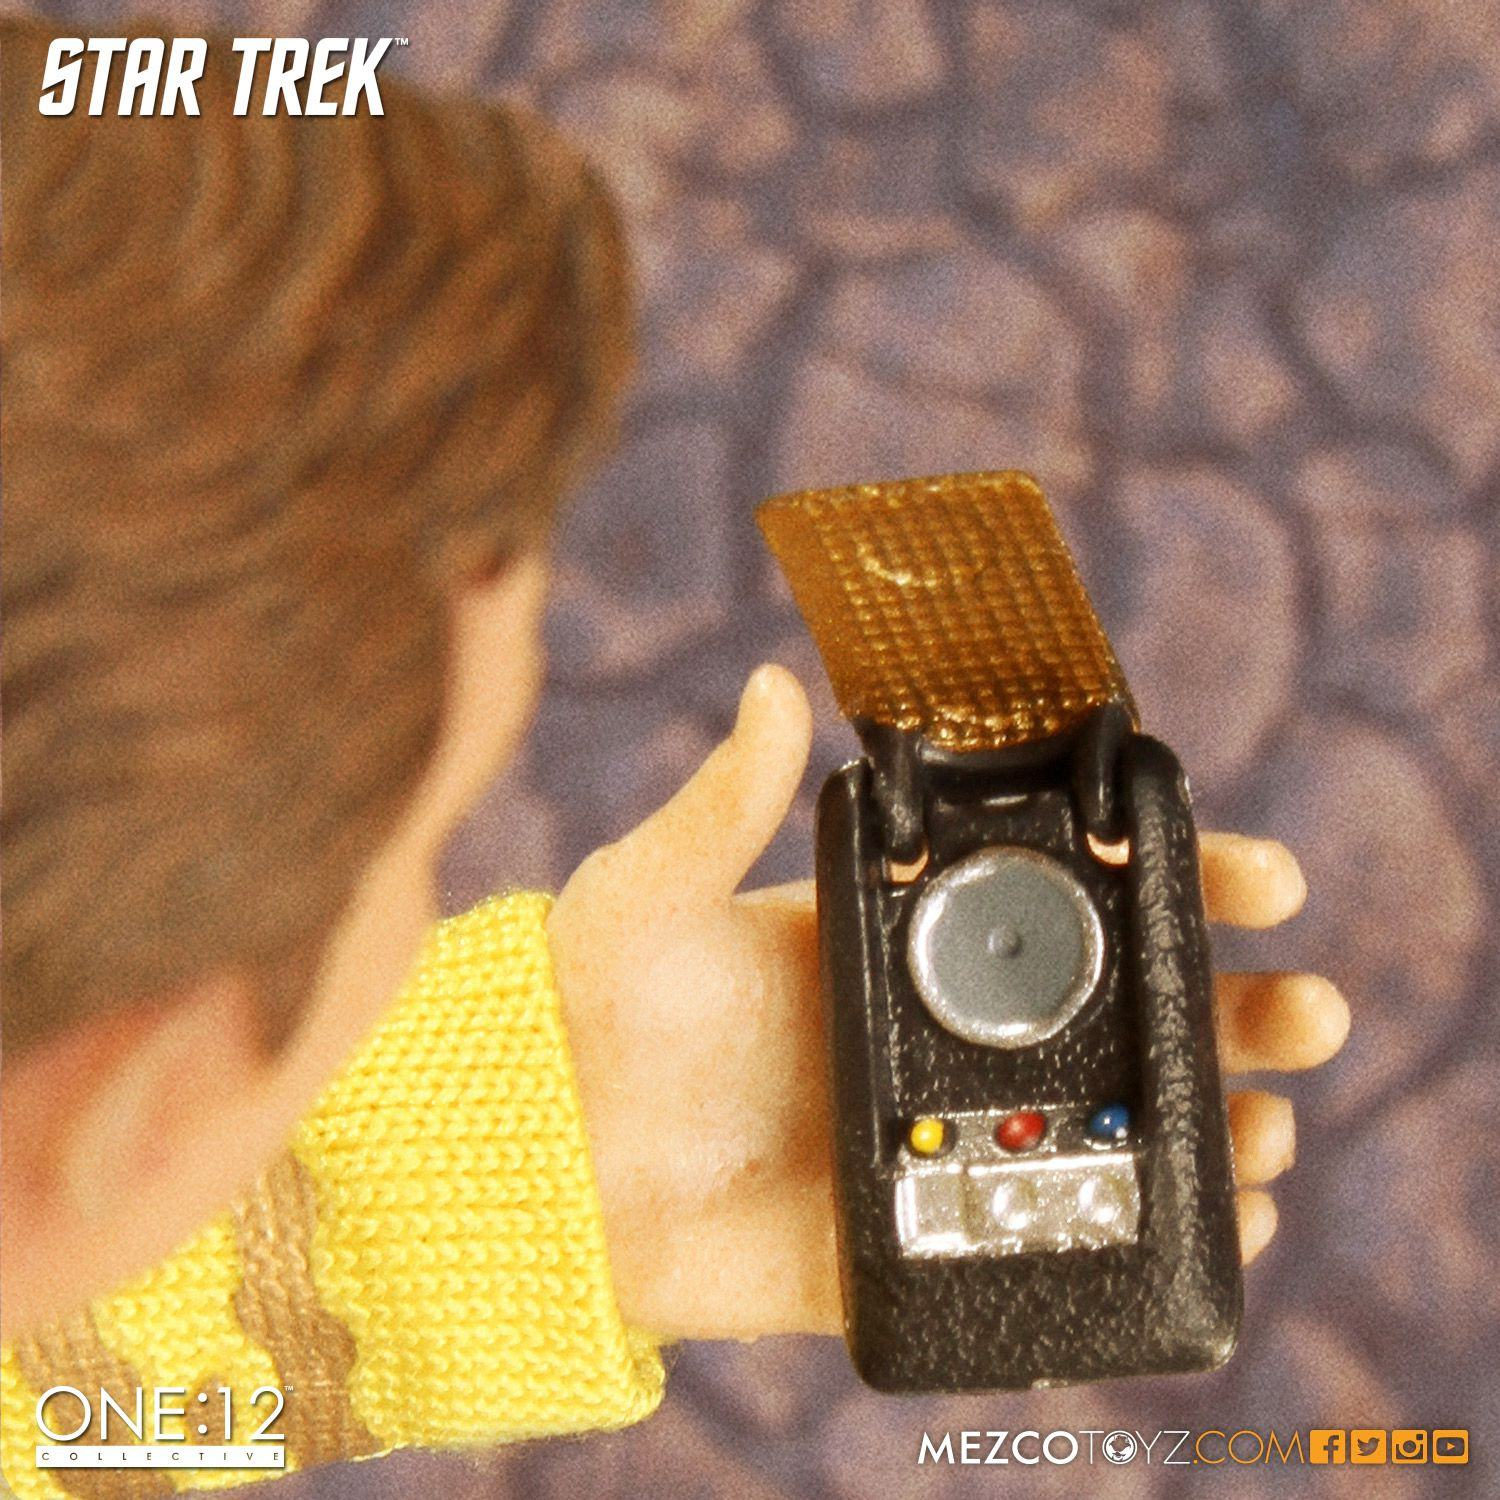 Kirk-Star-Trek-One-12-Collective-Action-Figure-07